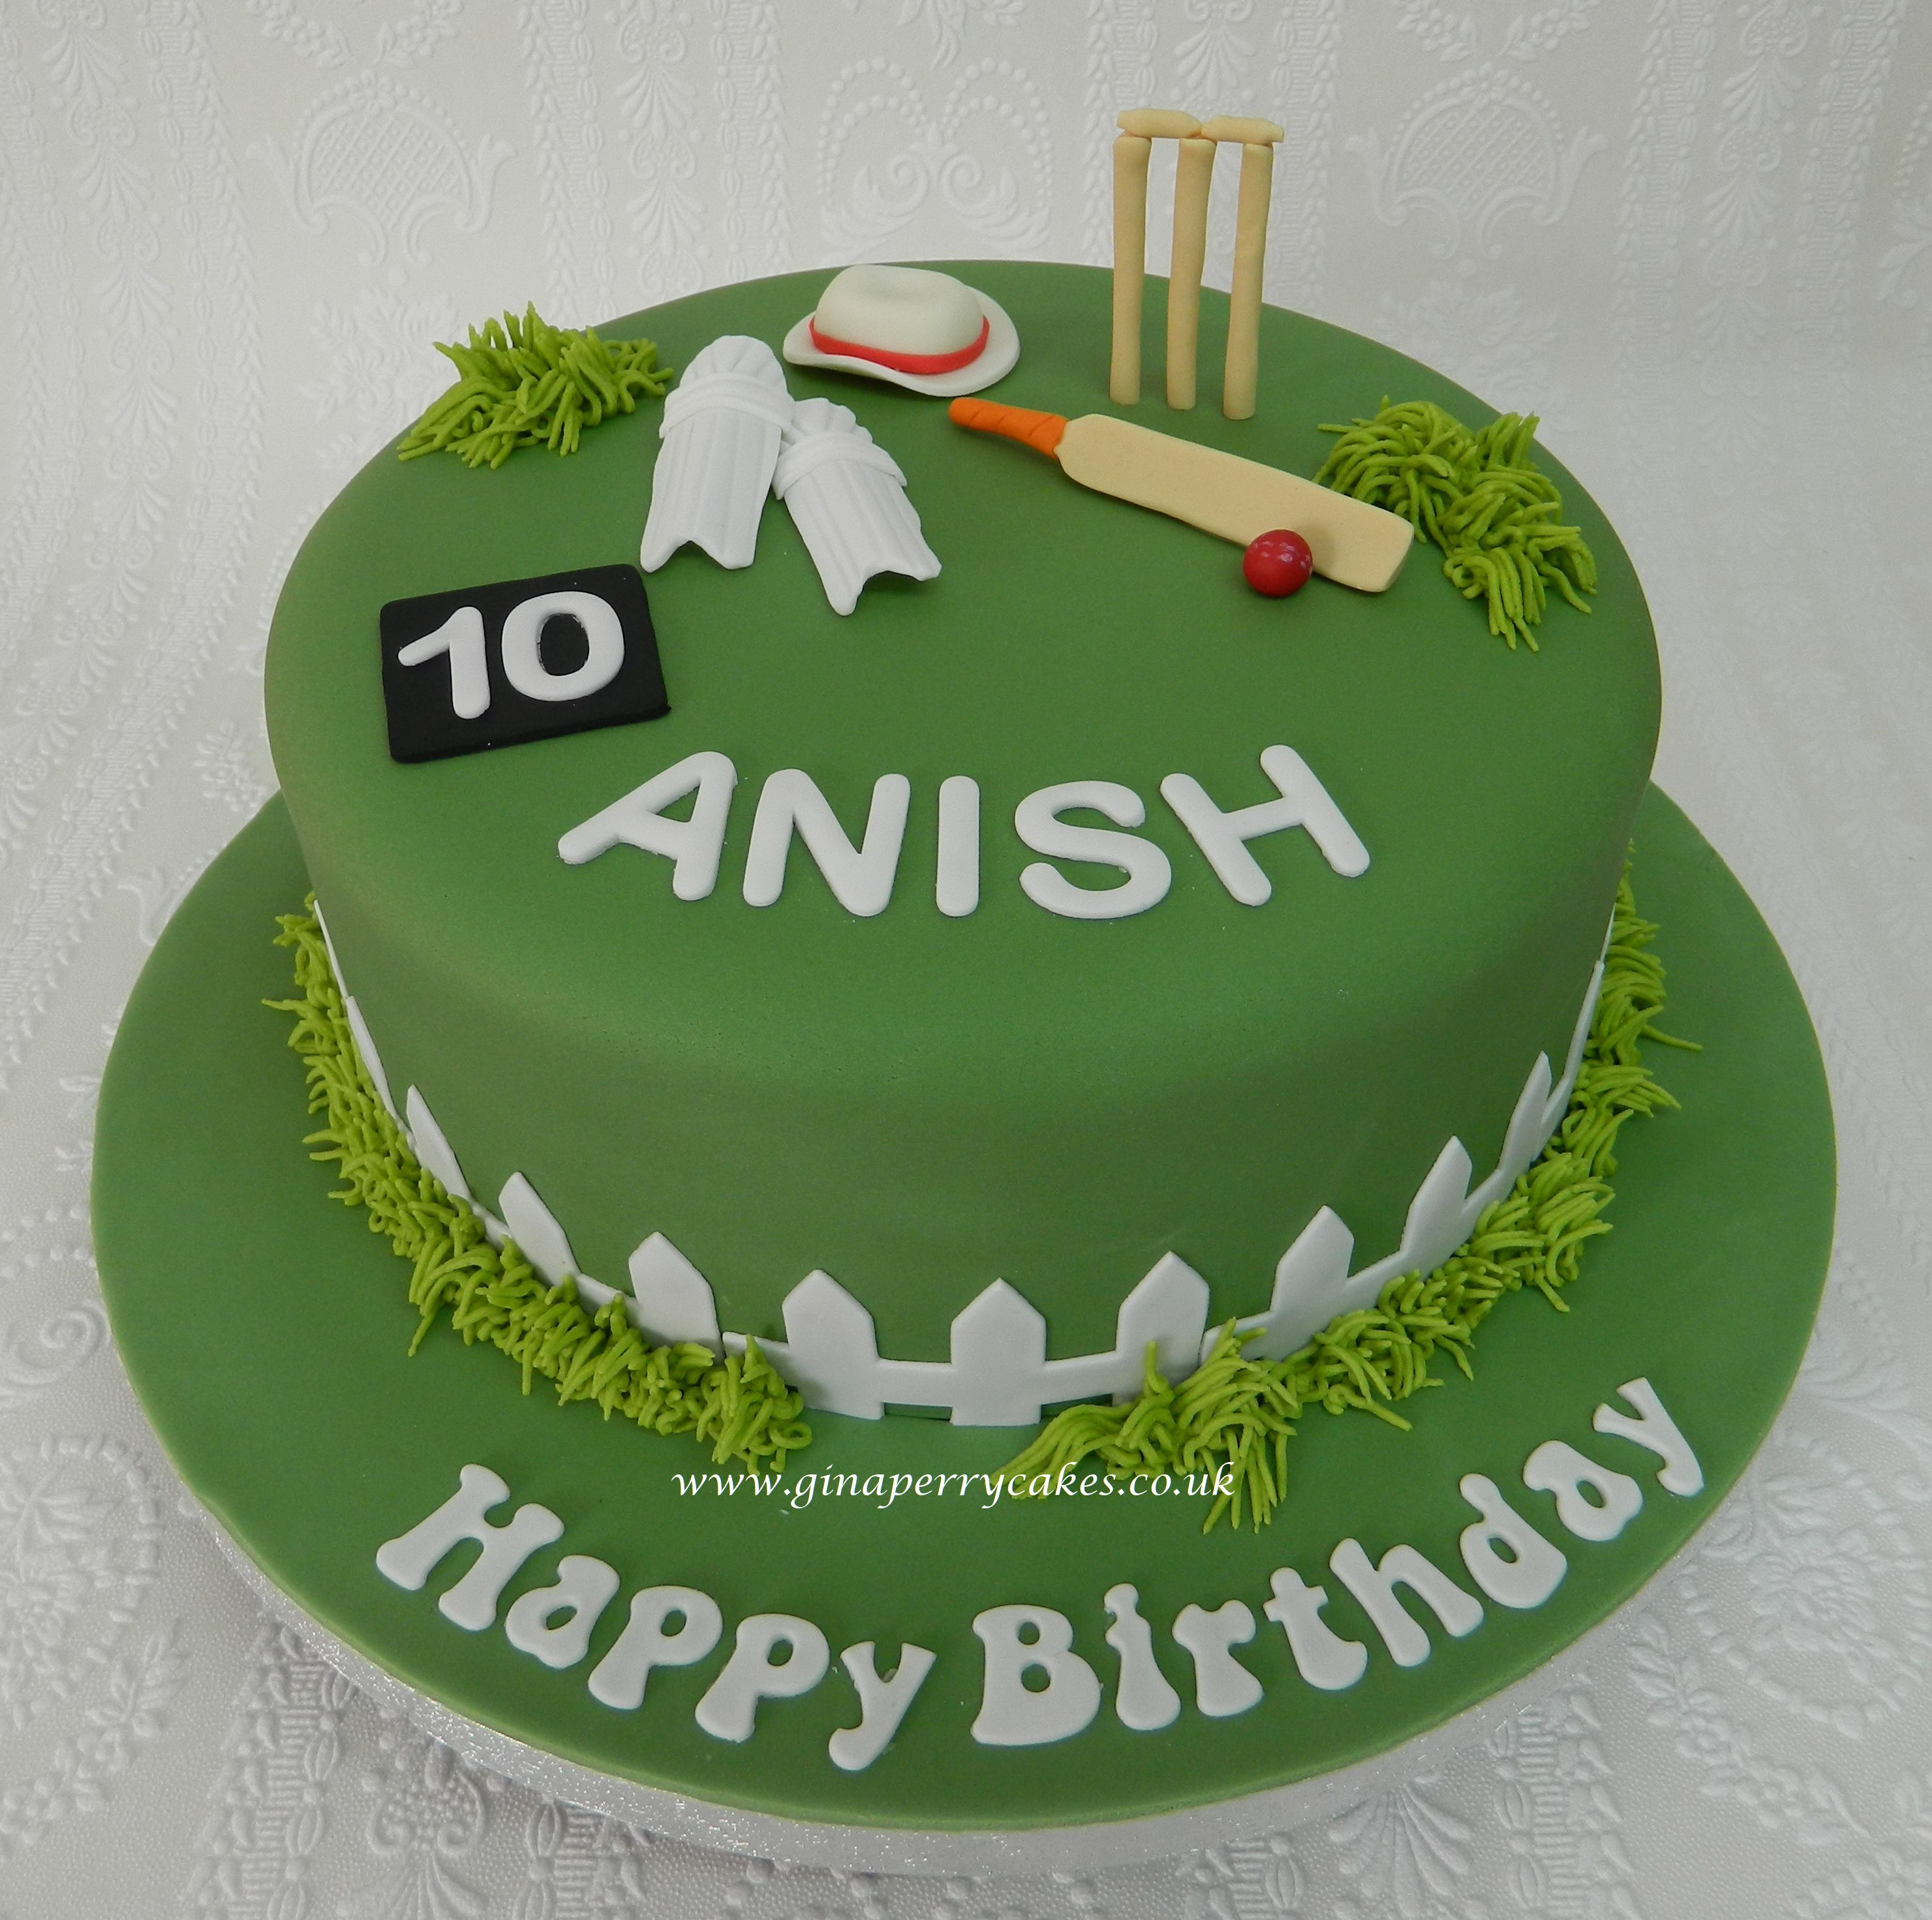 10th Birthday cake for a Cricket fan in 2020 | Cricket ...